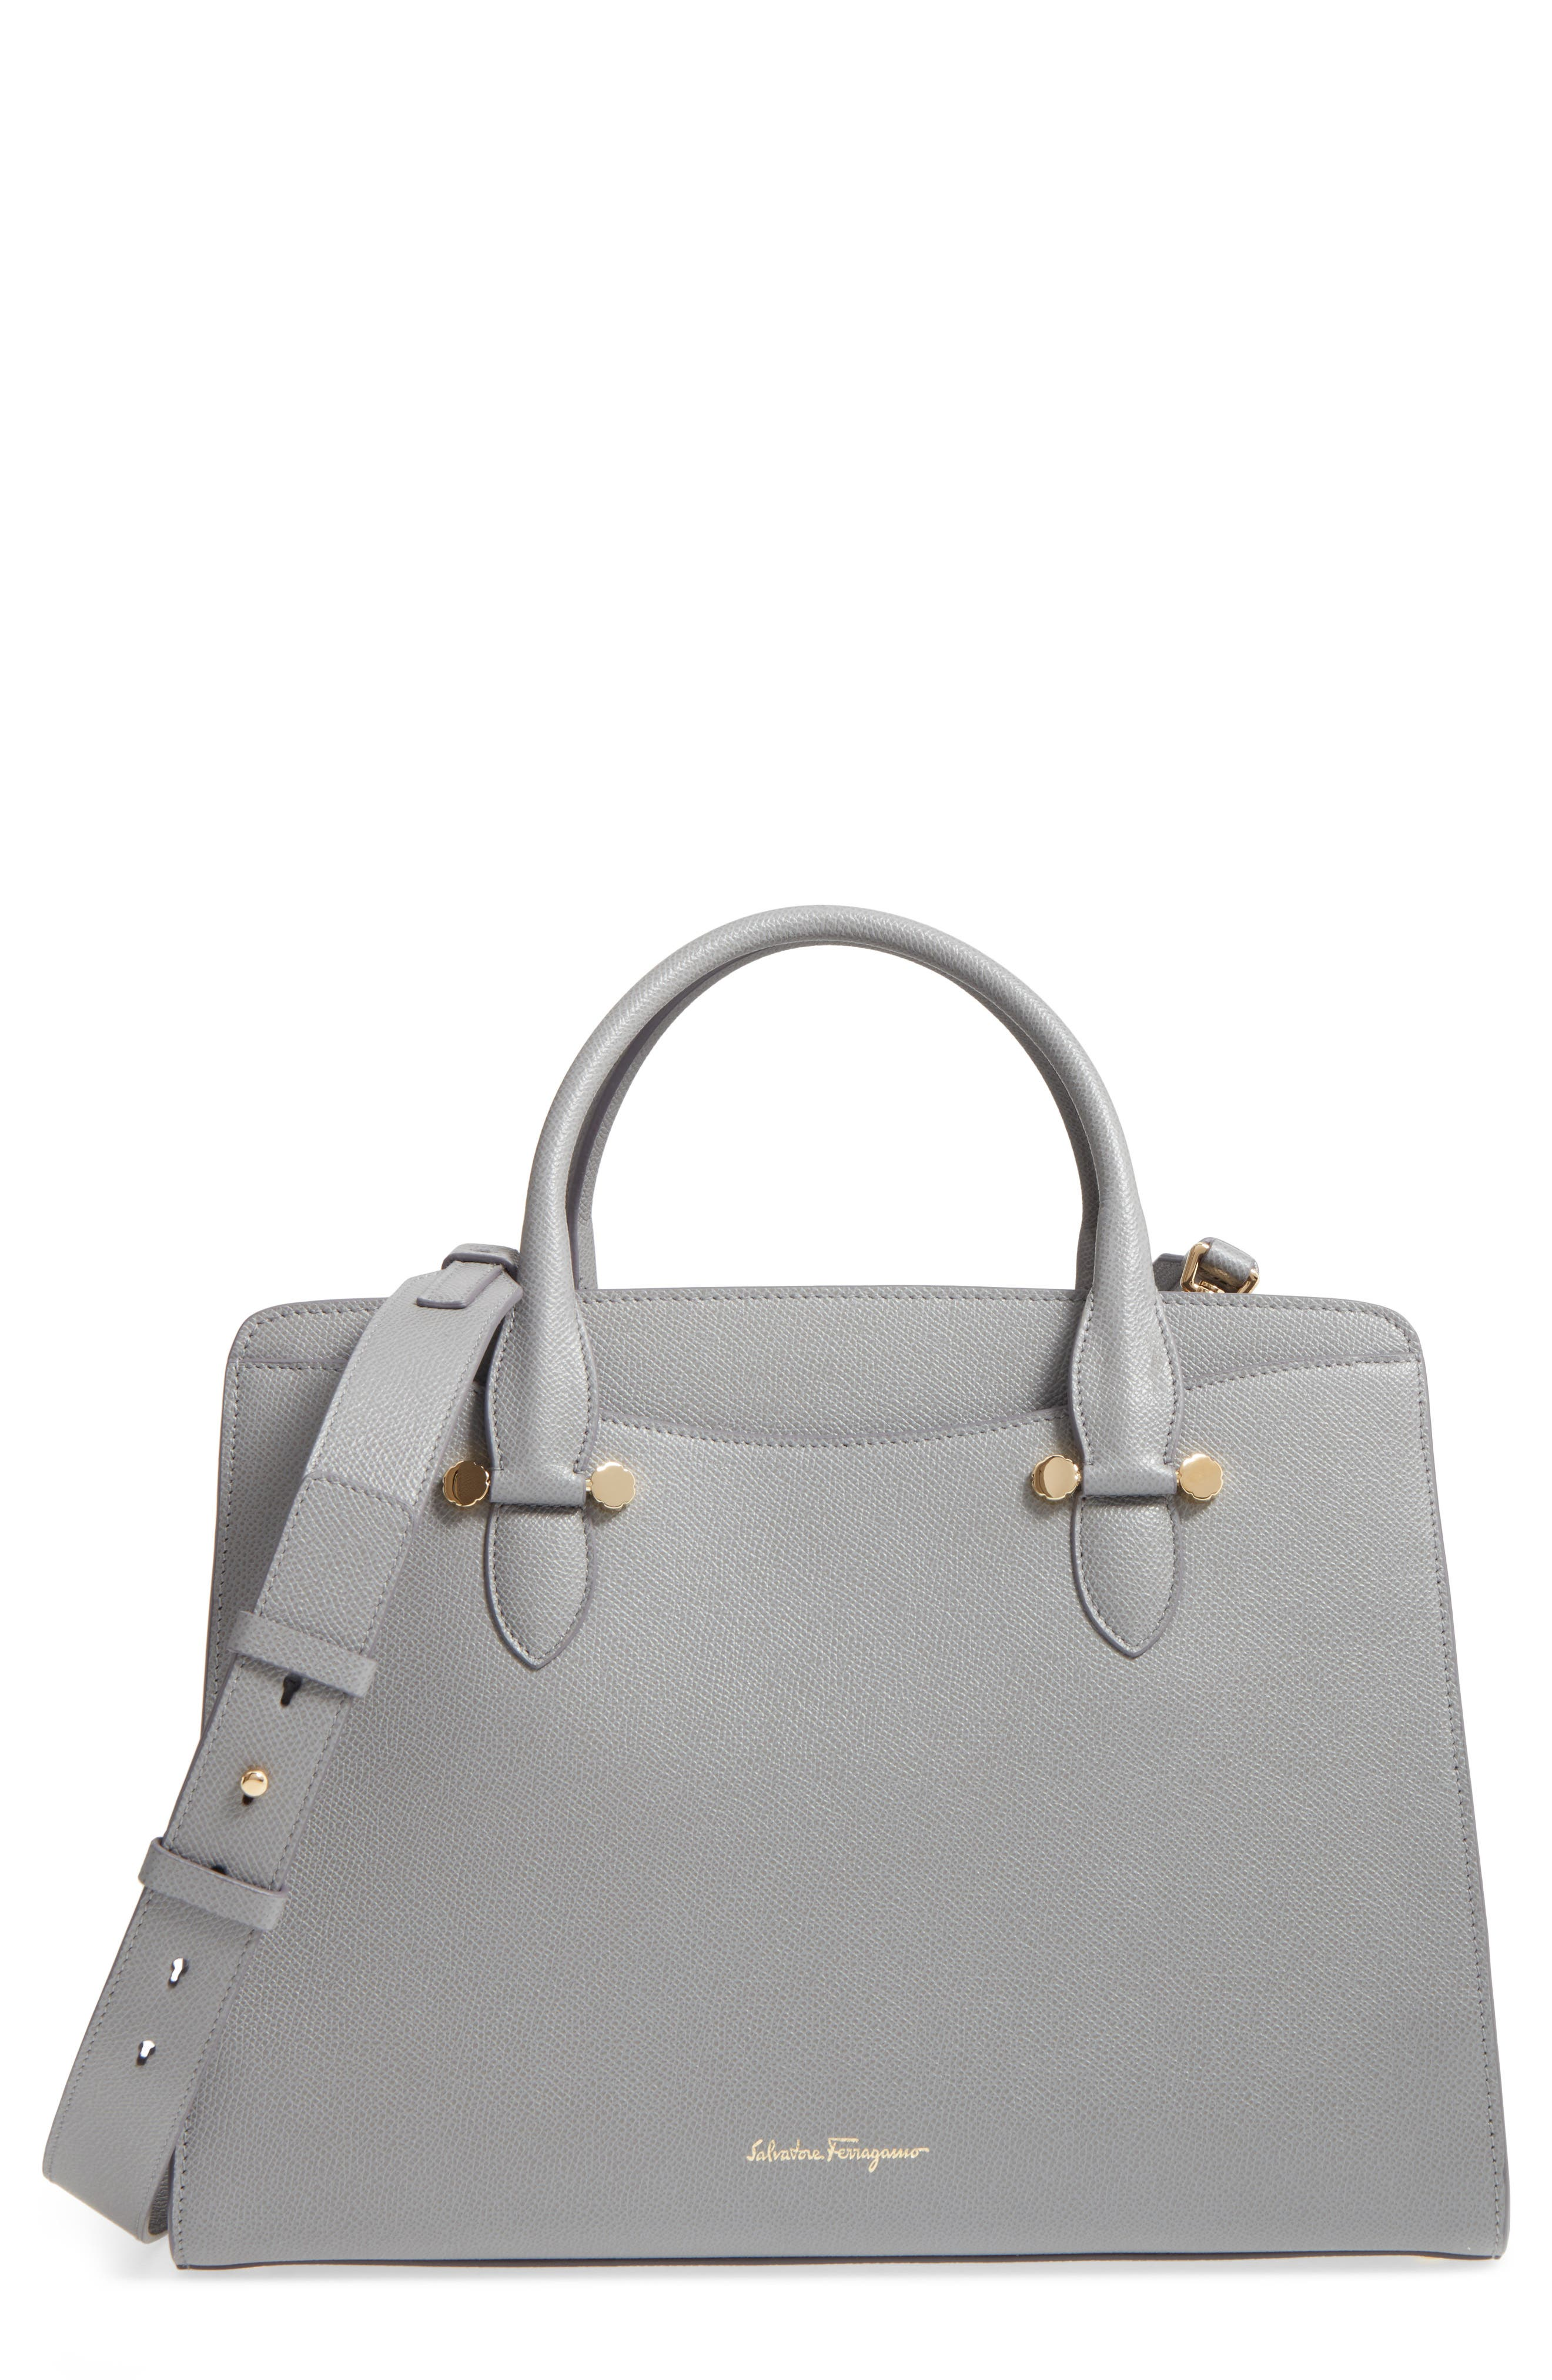 Small Today Leather Satchel,                             Main thumbnail 1, color,                             020